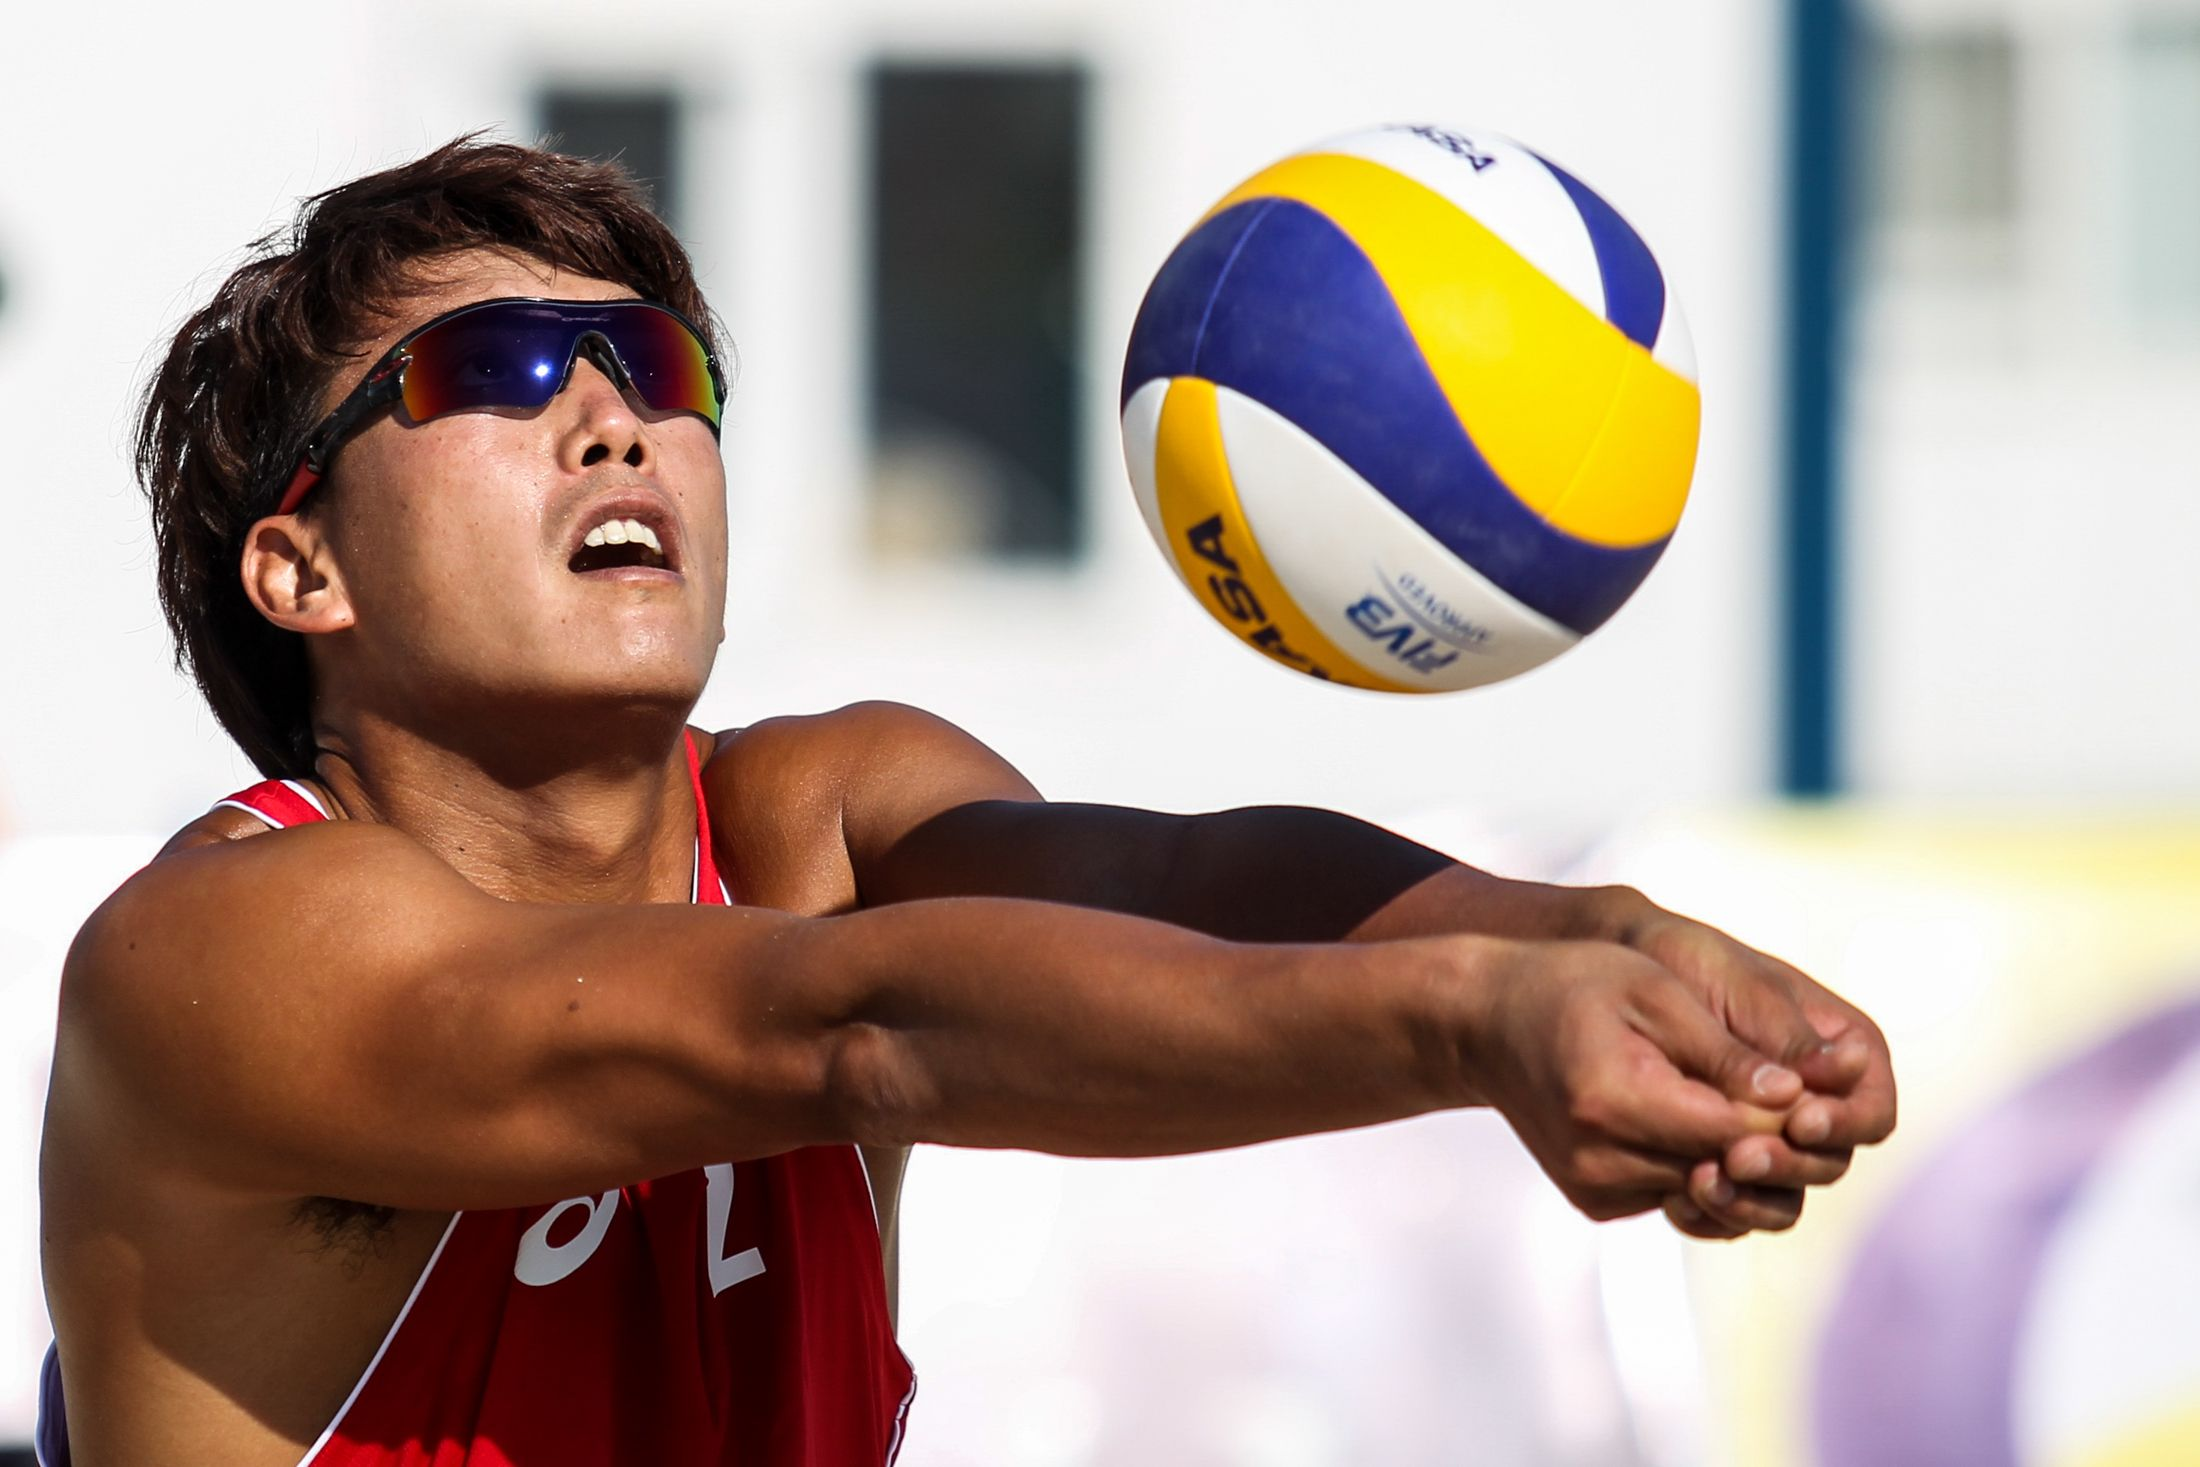 Li Jian On Defense For China Fivb Beach Volleyball Beach Volleyball Li Jian